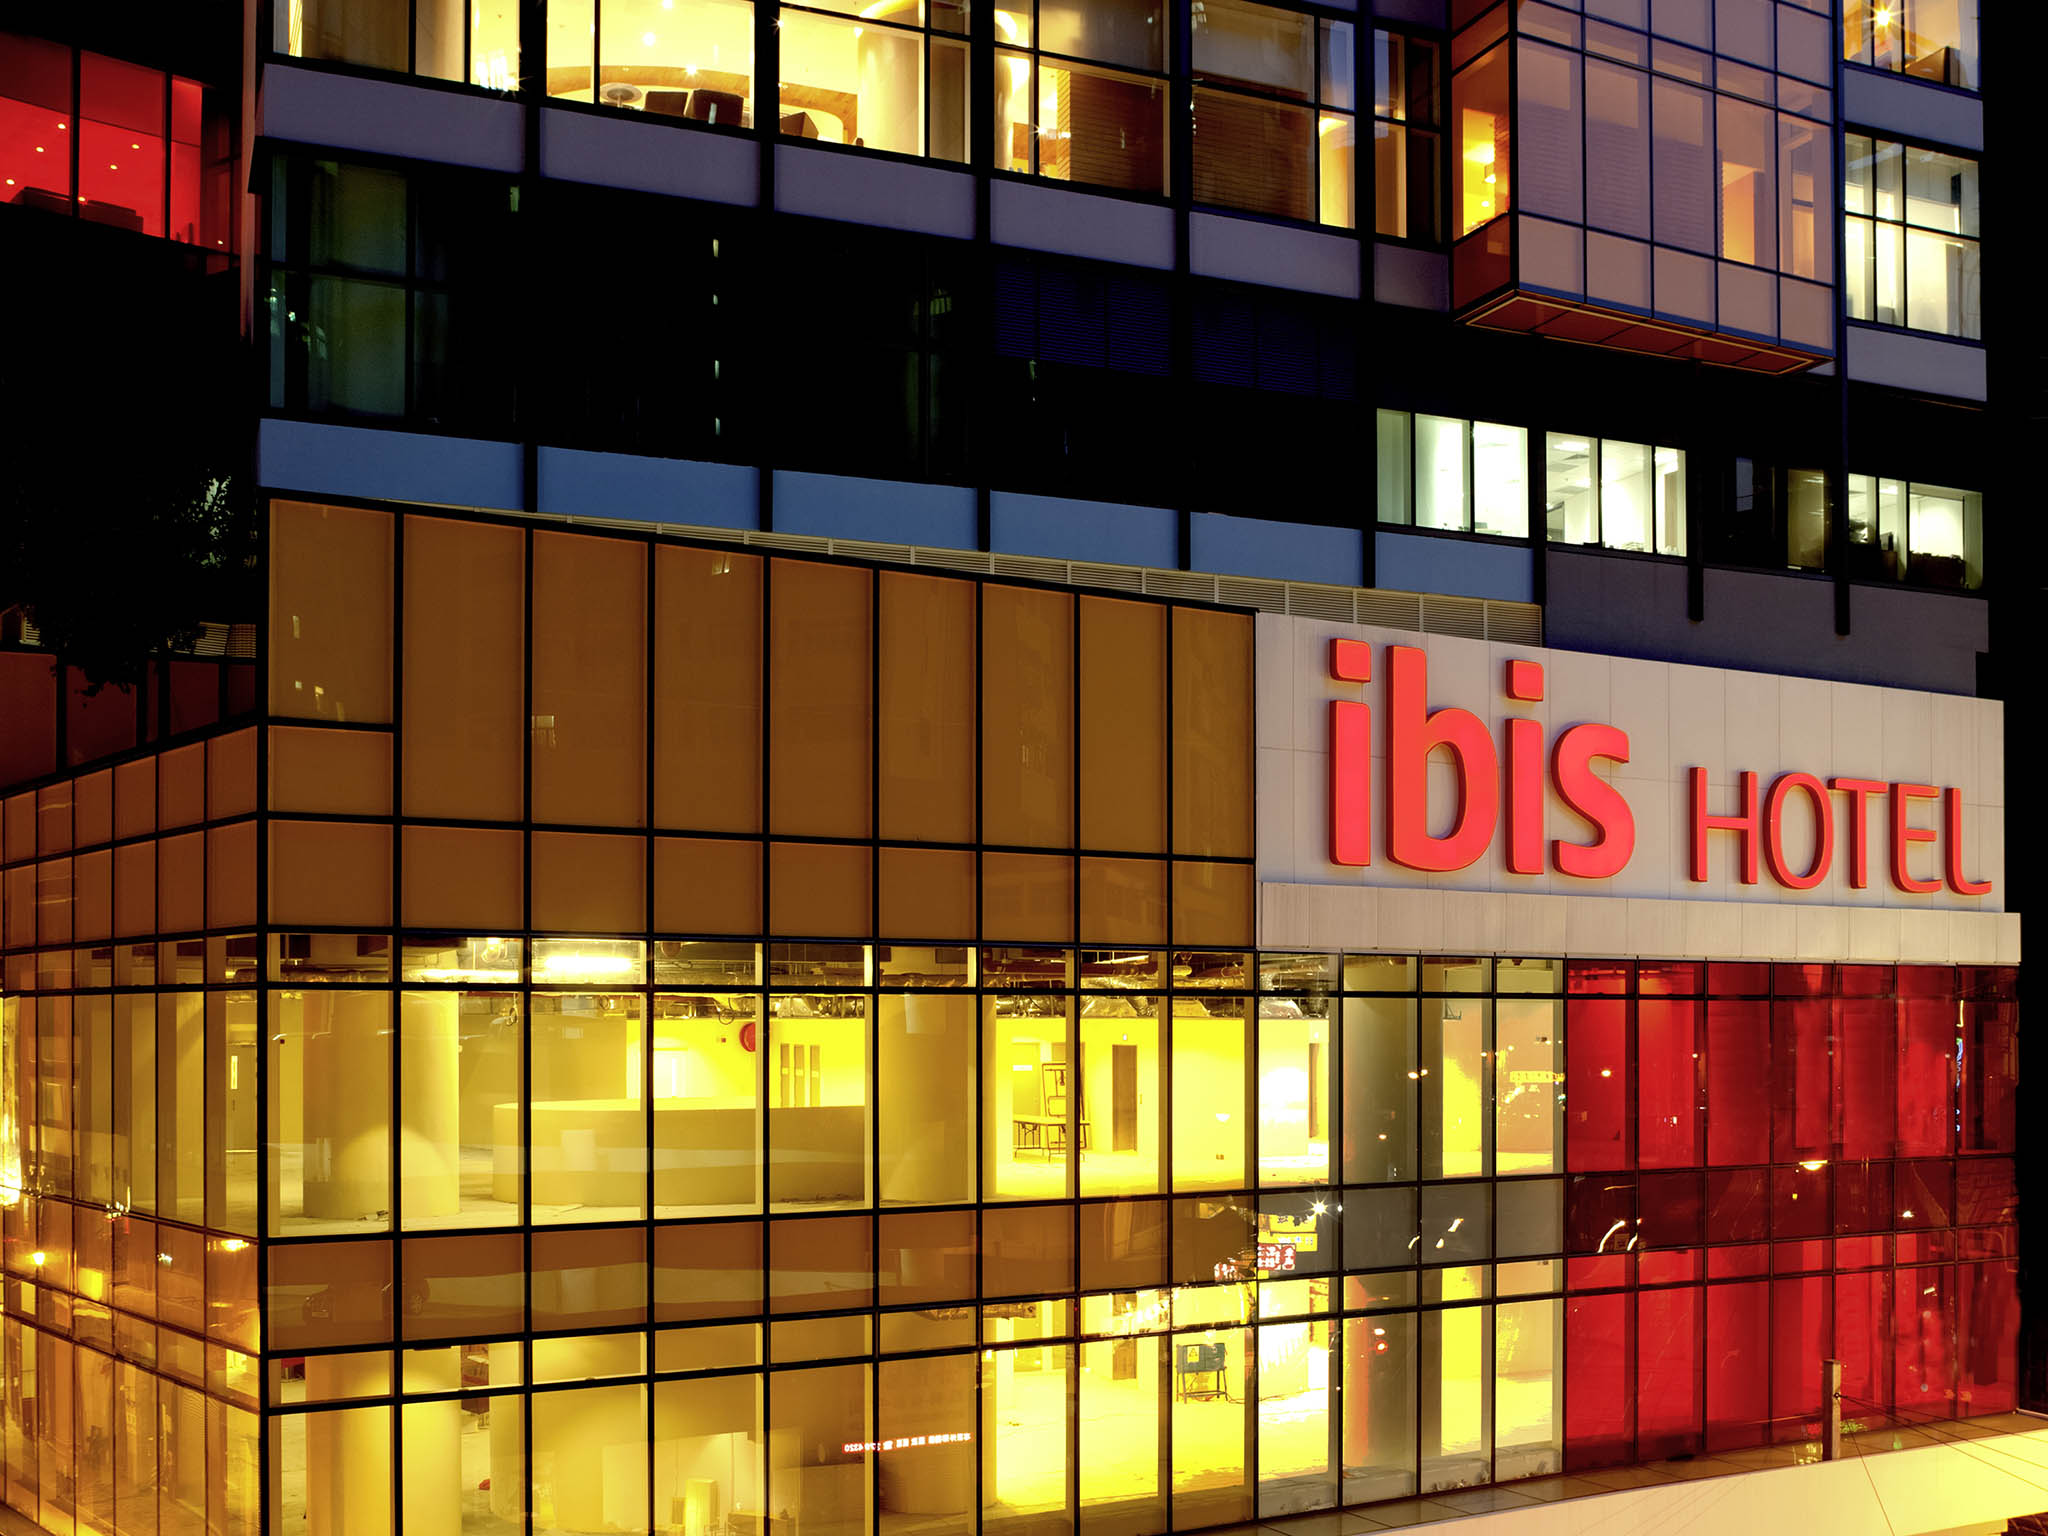 Business hotel in hong kong east hotel -  Hotel Ibis Hong Kong Central And Sheung Wan